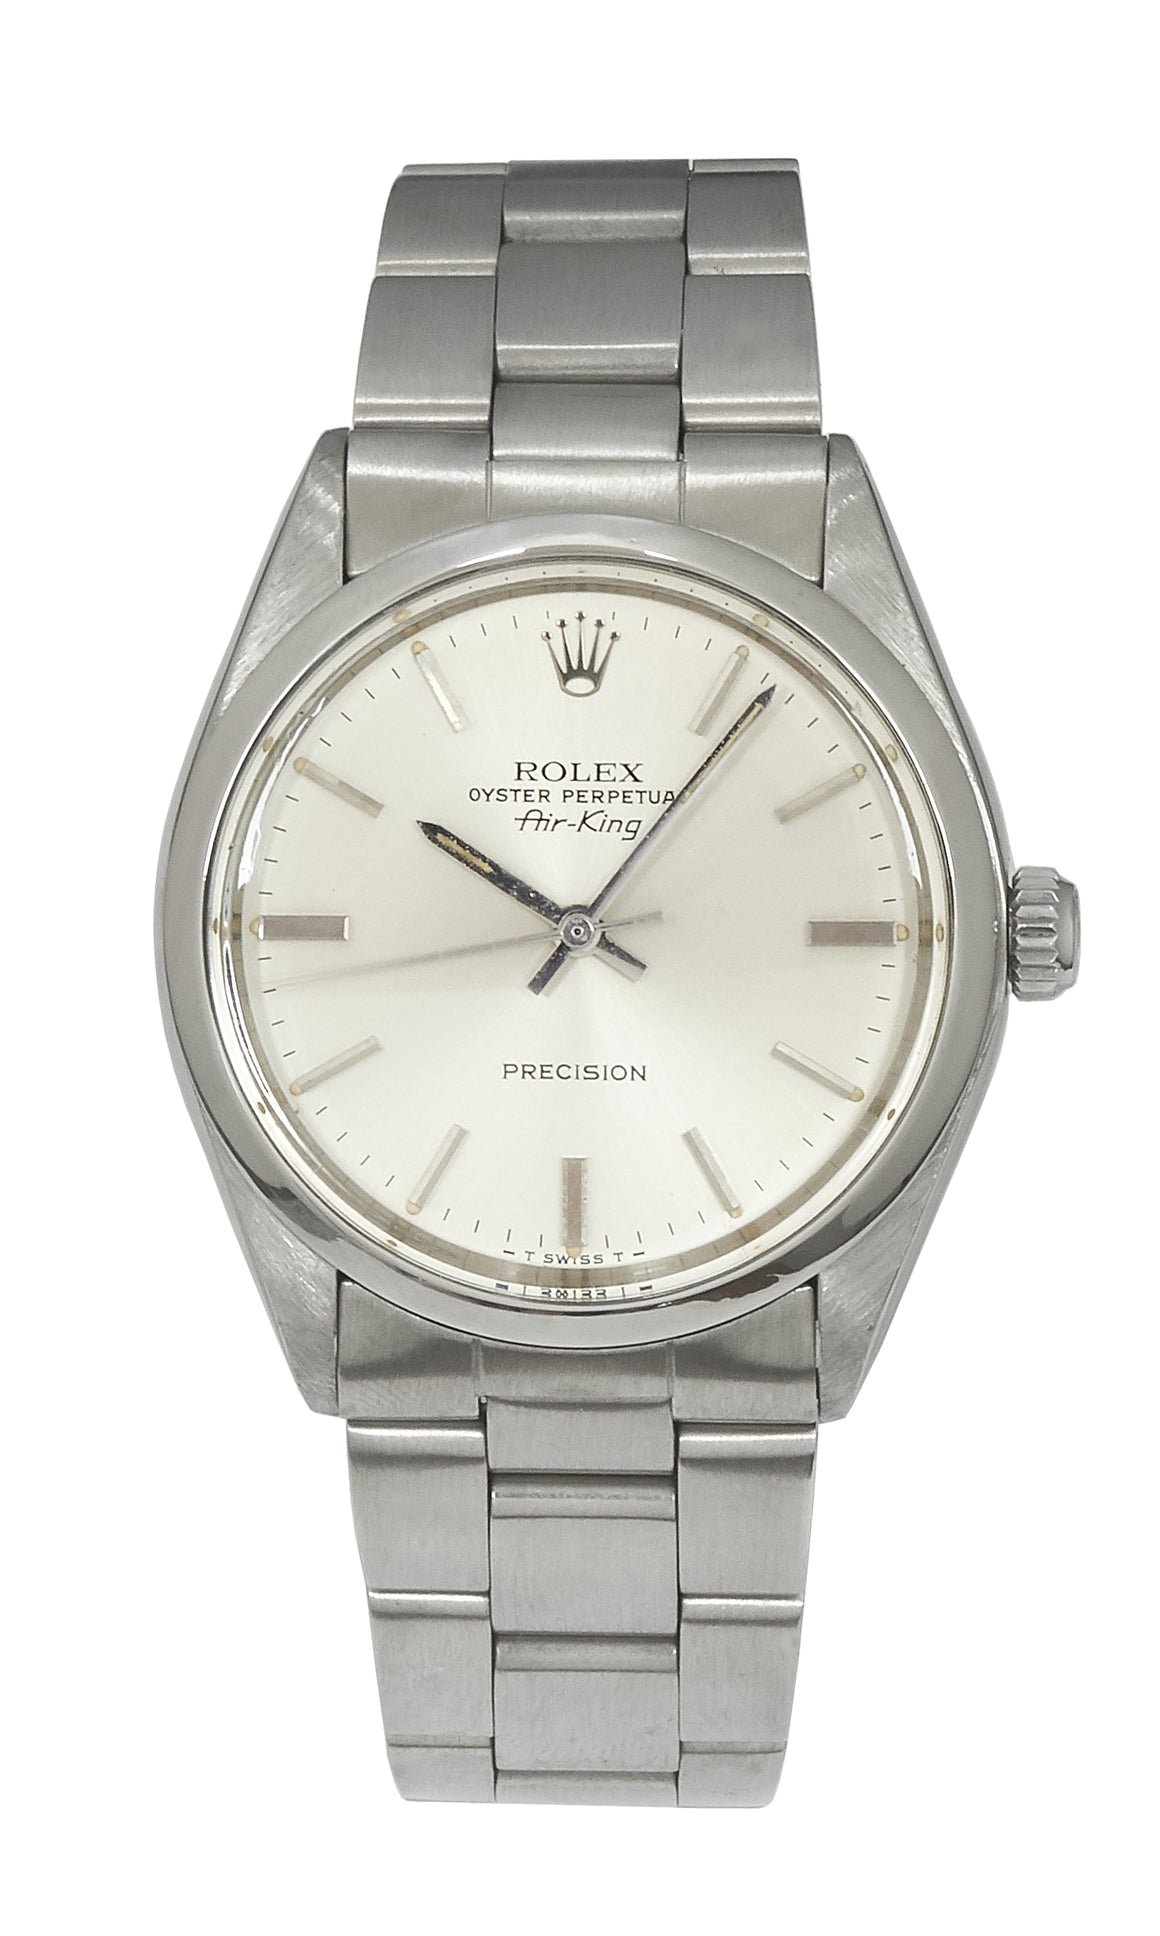 Rolex Air King Precision, Original Rolex (1977)